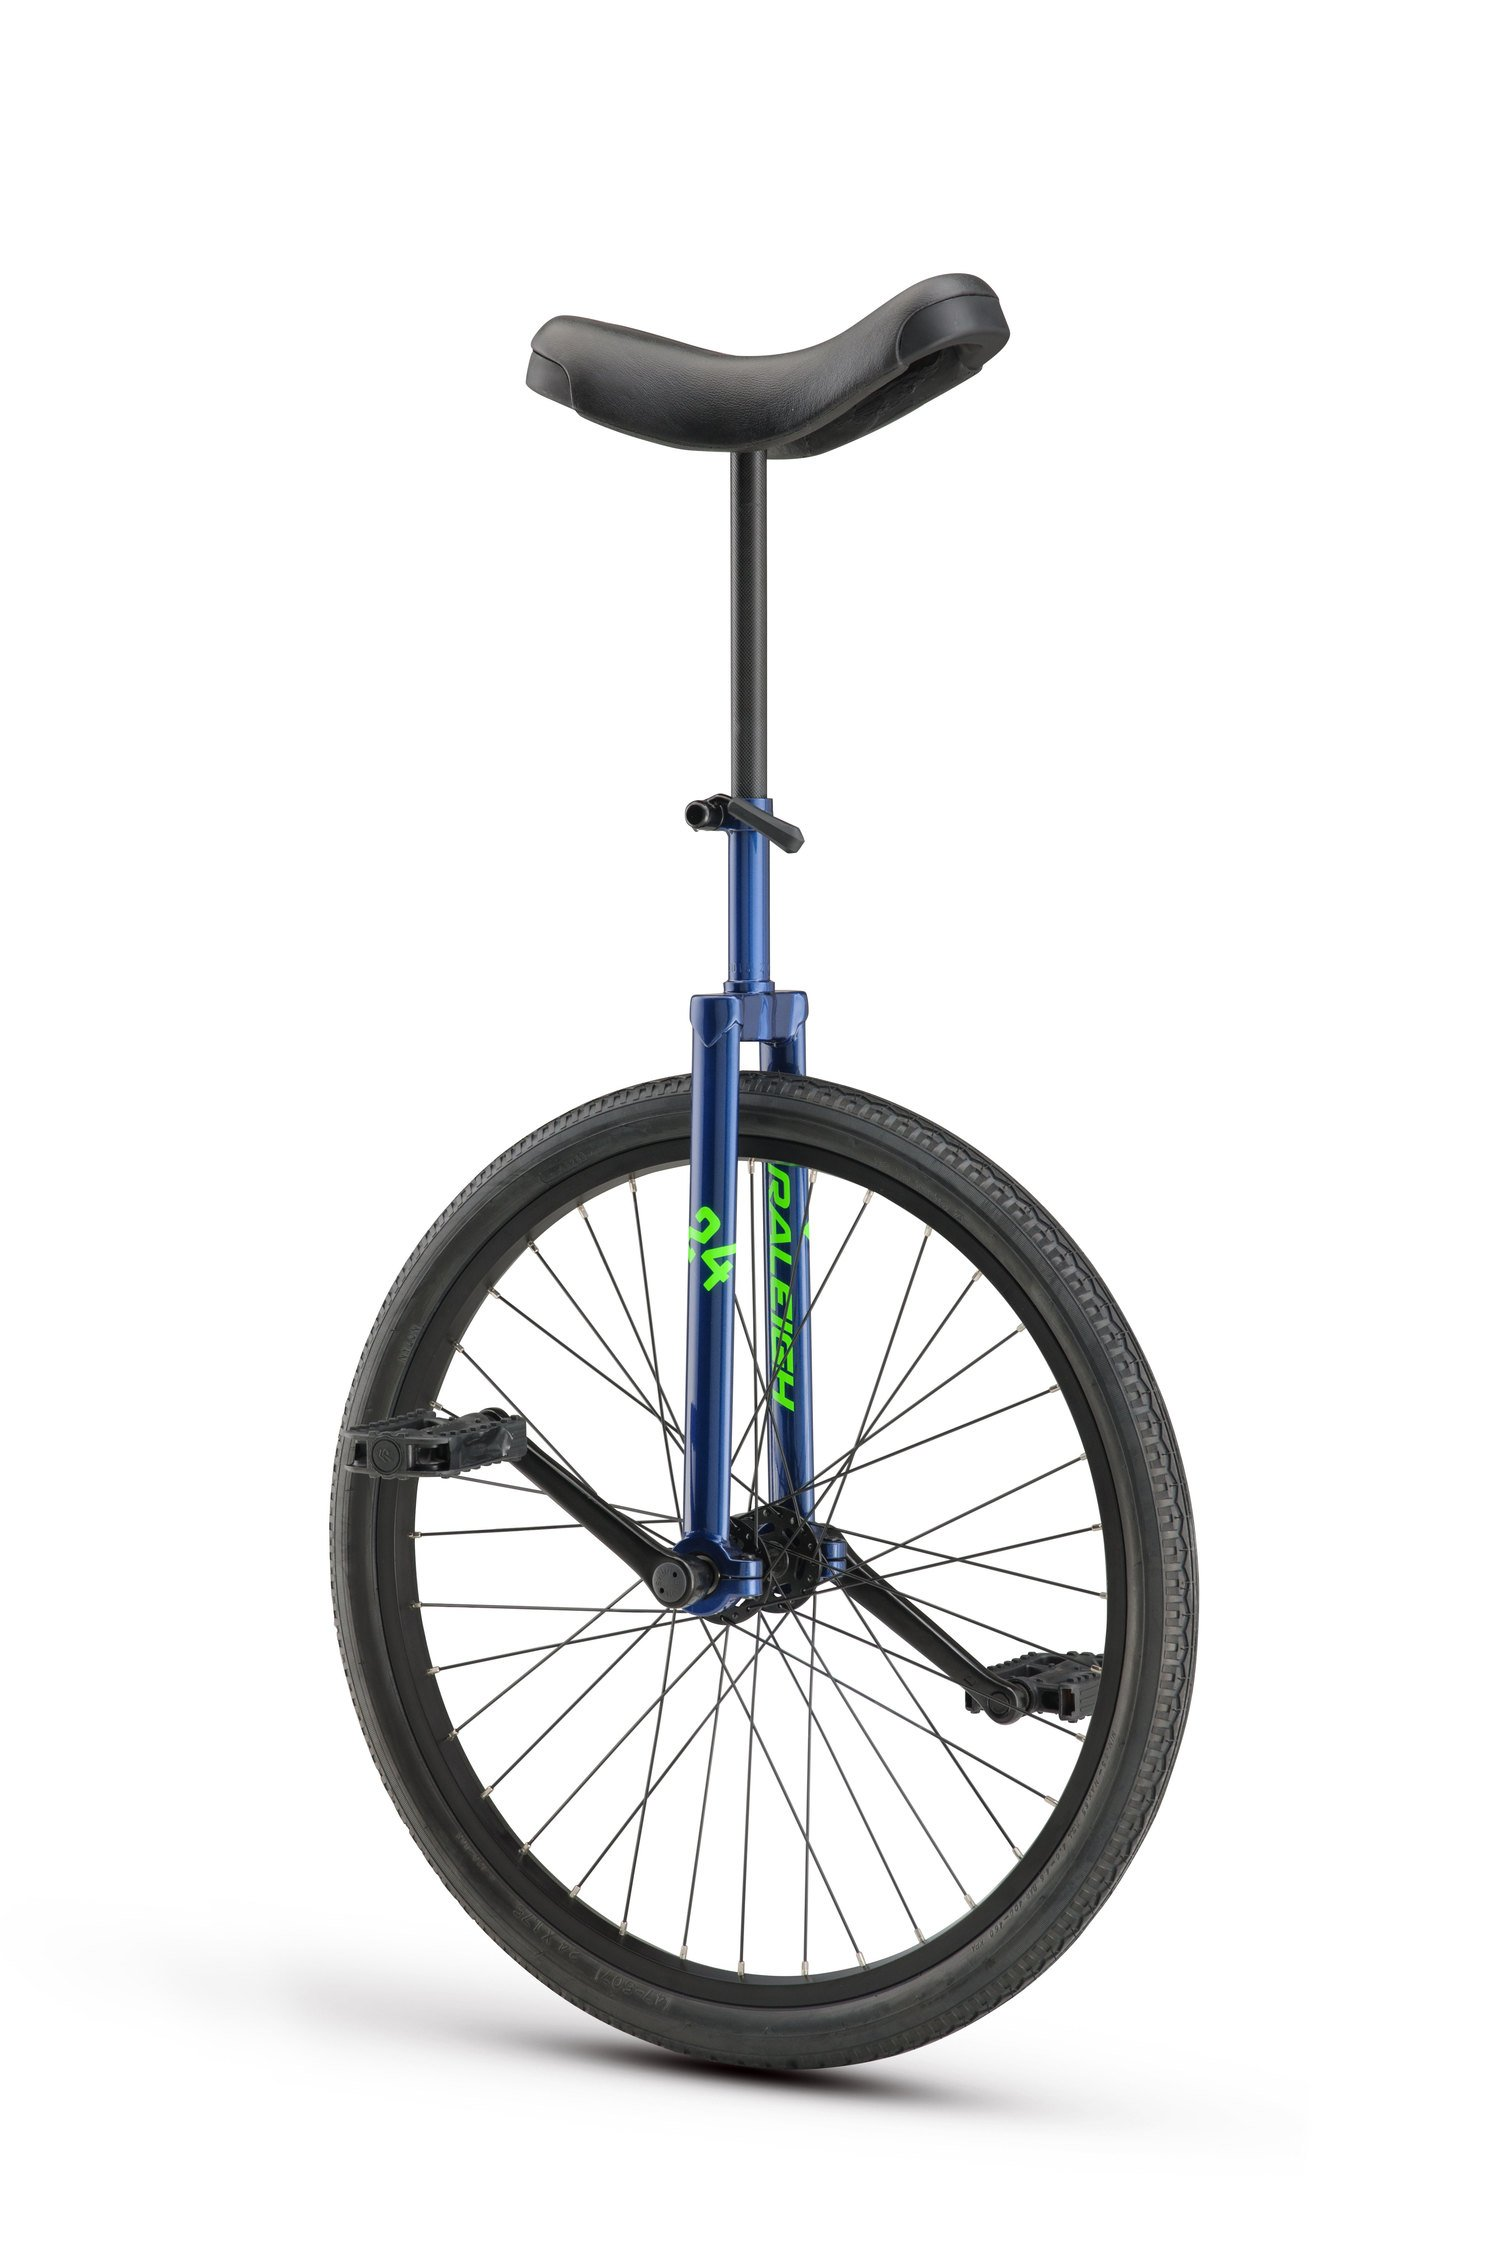 Raleigh Unistar 24, 24inch Wheel Unicycle, Blue by RALEIGH